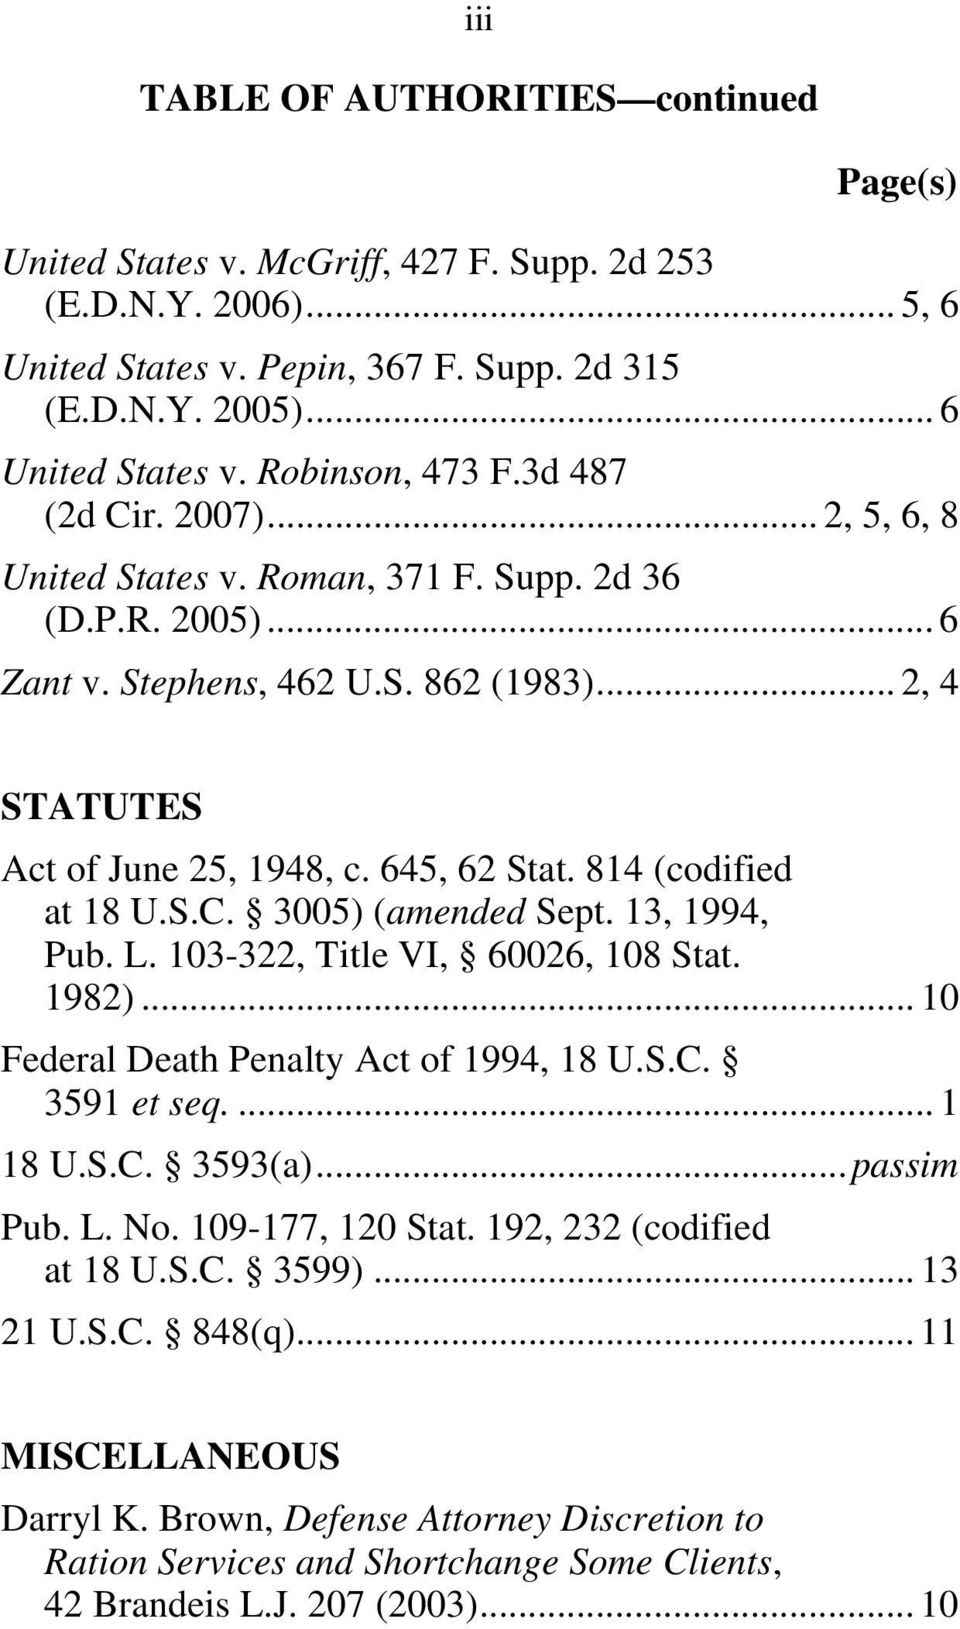 814 (codified at 18 U.S.C. 3005) (amended Sept. 13, 1994, Pub. L. 103-322, Title VI, 60026, 108 Stat. 1982)... 10 Federal Death Penalty Act of 1994, 18 U.S.C. 3591 et seq.... 1 18 U.S.C. 3593(a).